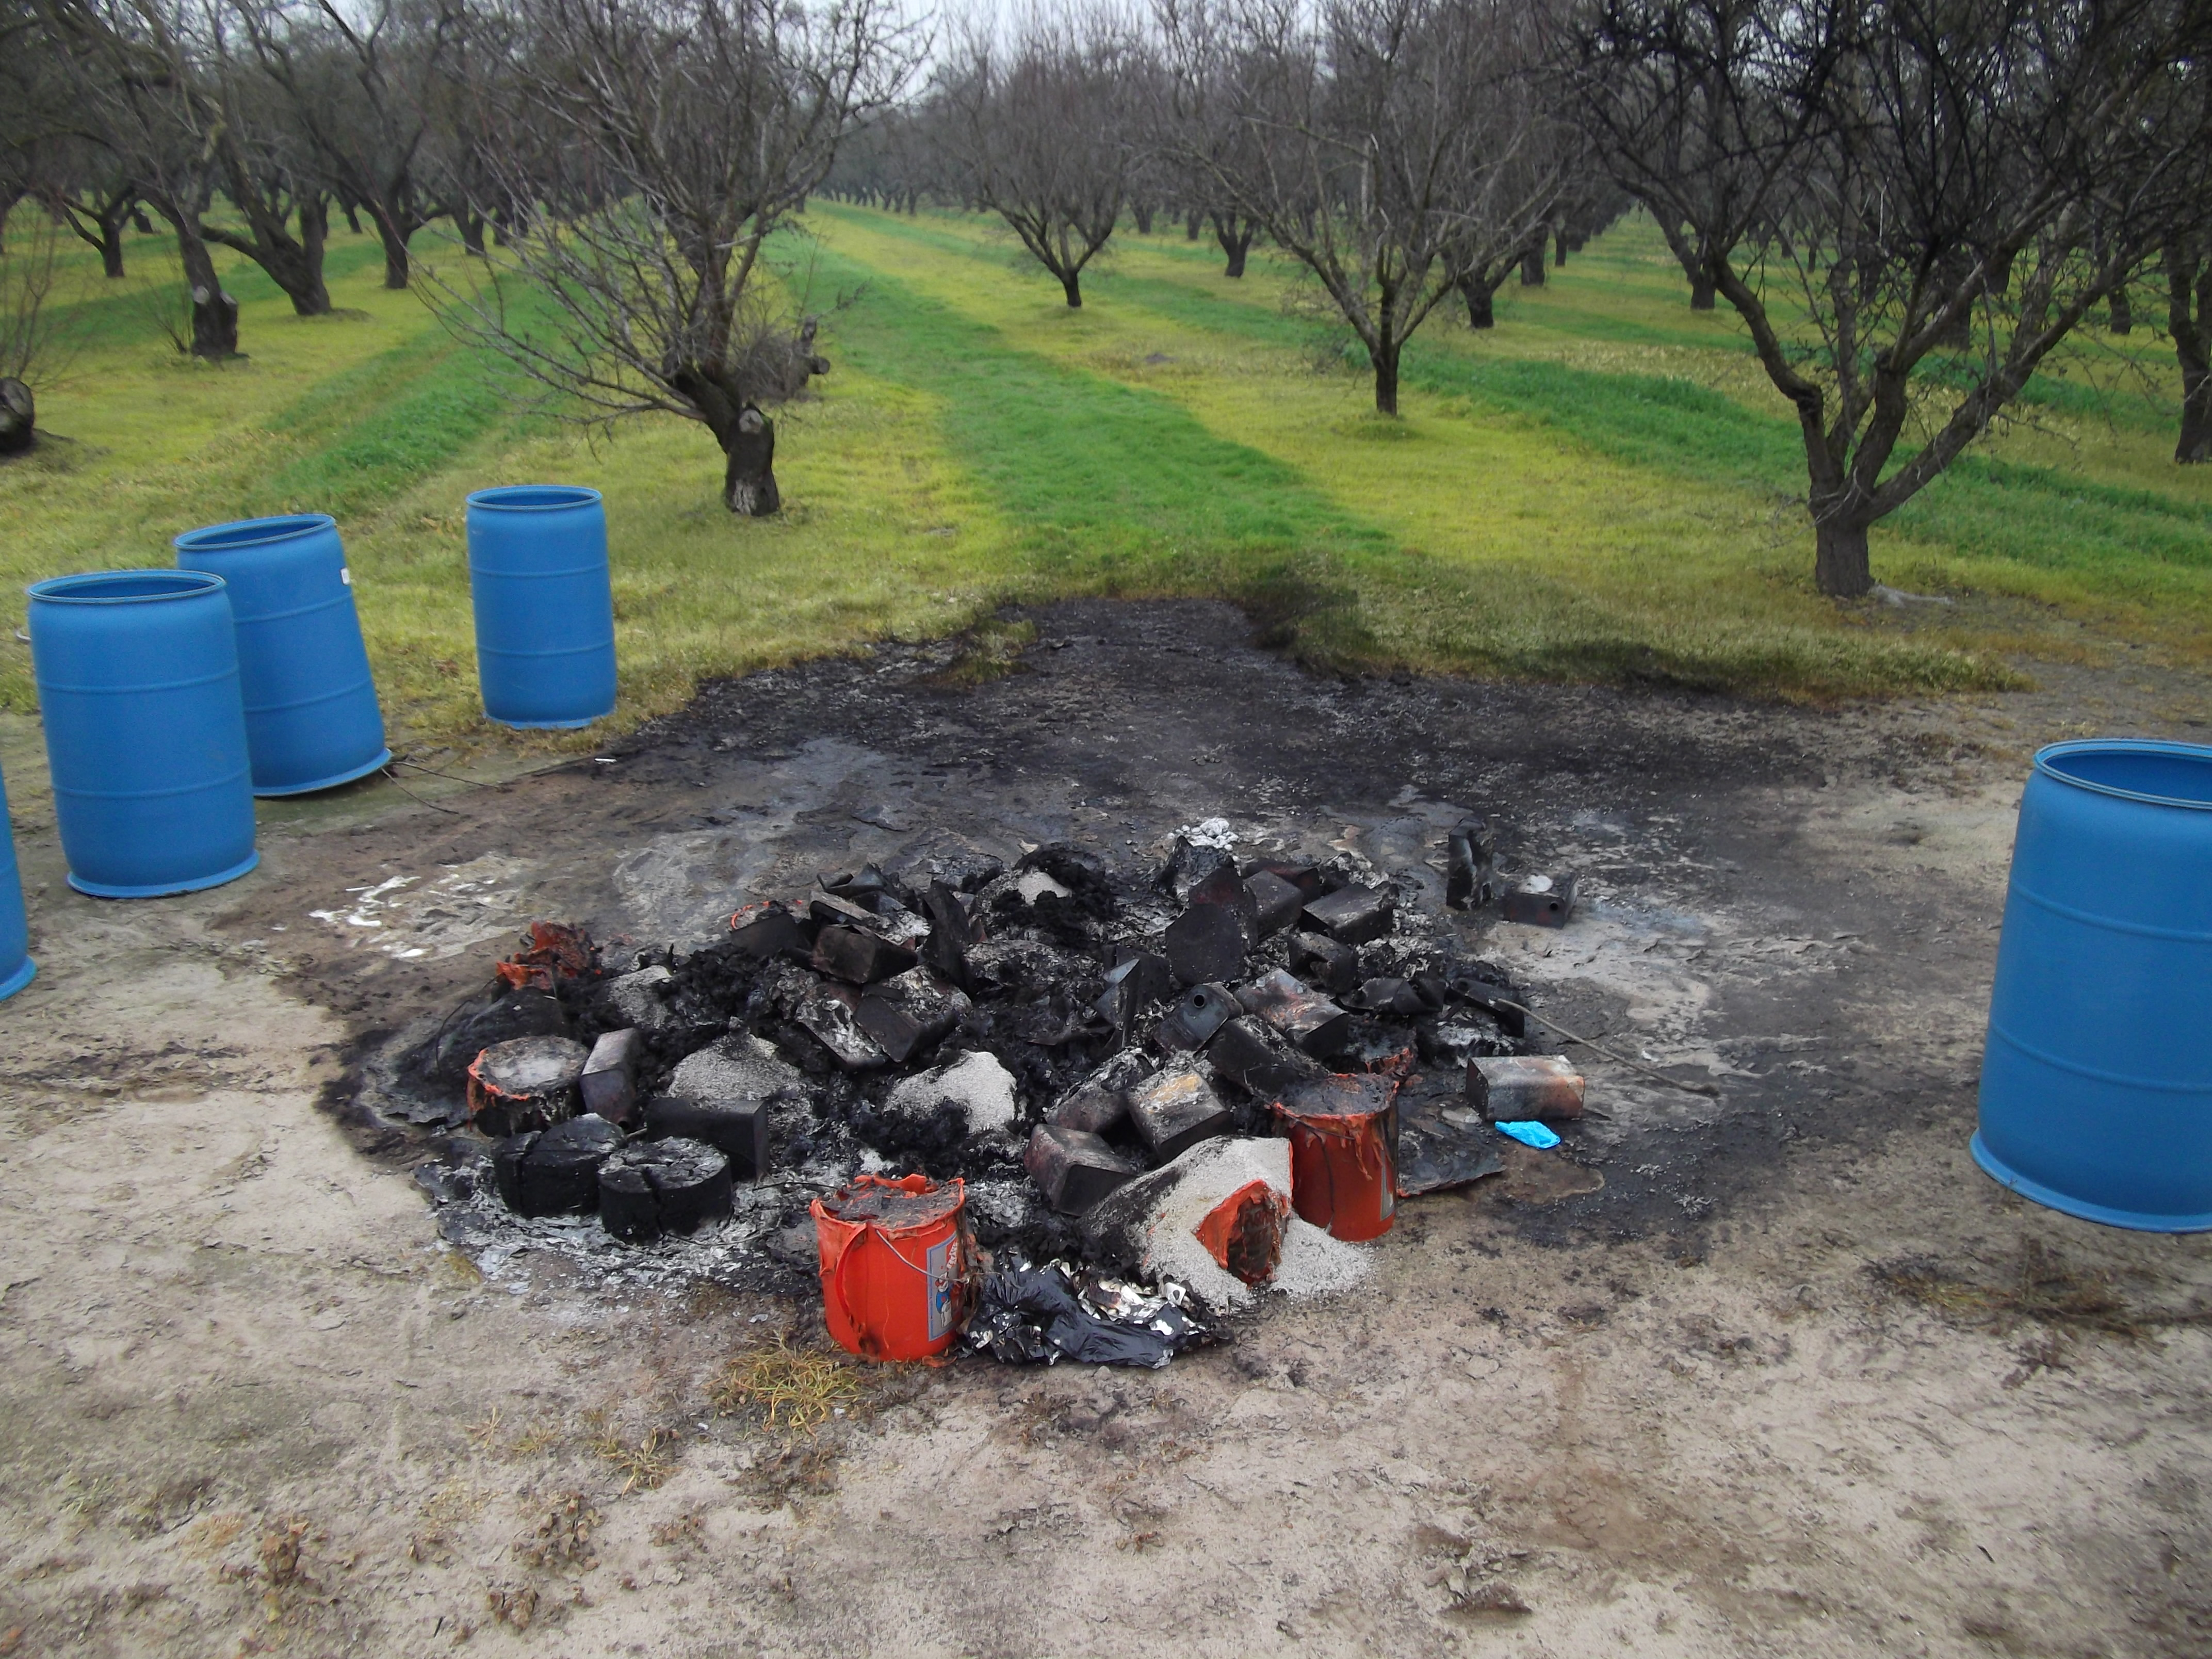 A roadside abandonment of hazardous waste associated with an illegal drug lab operation.